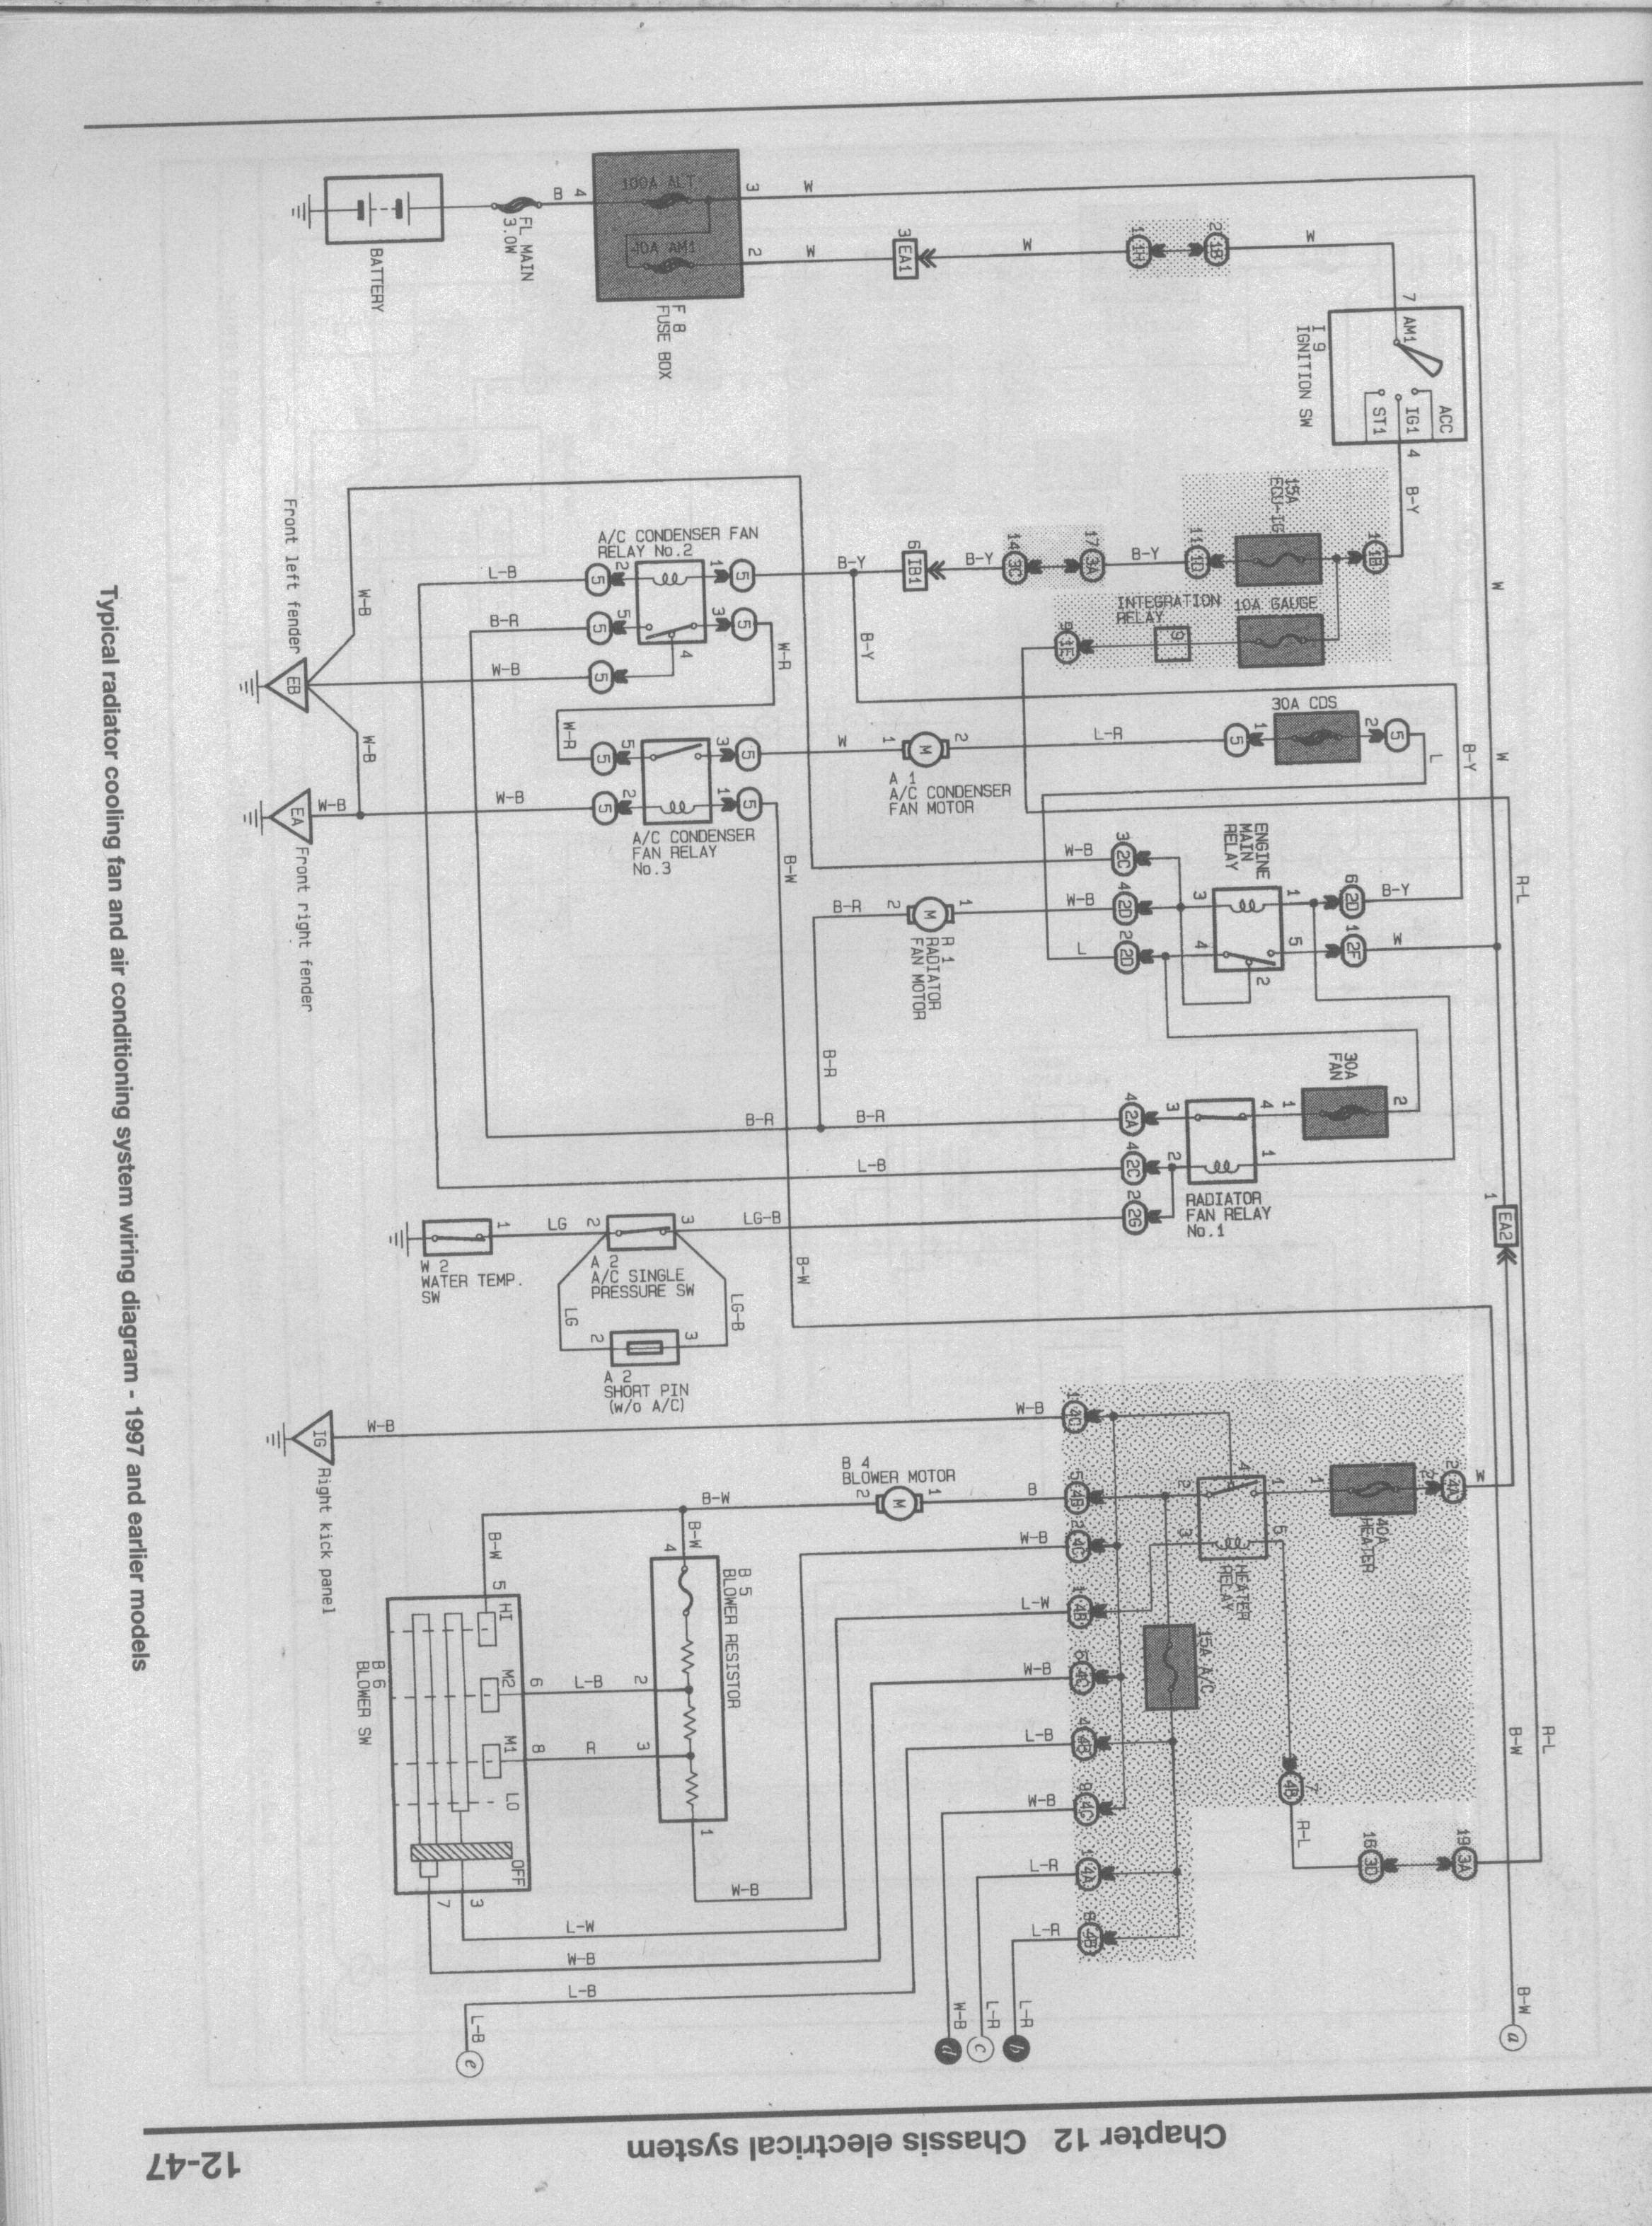 basic car wiring diagram irrational number air conditioning free engine